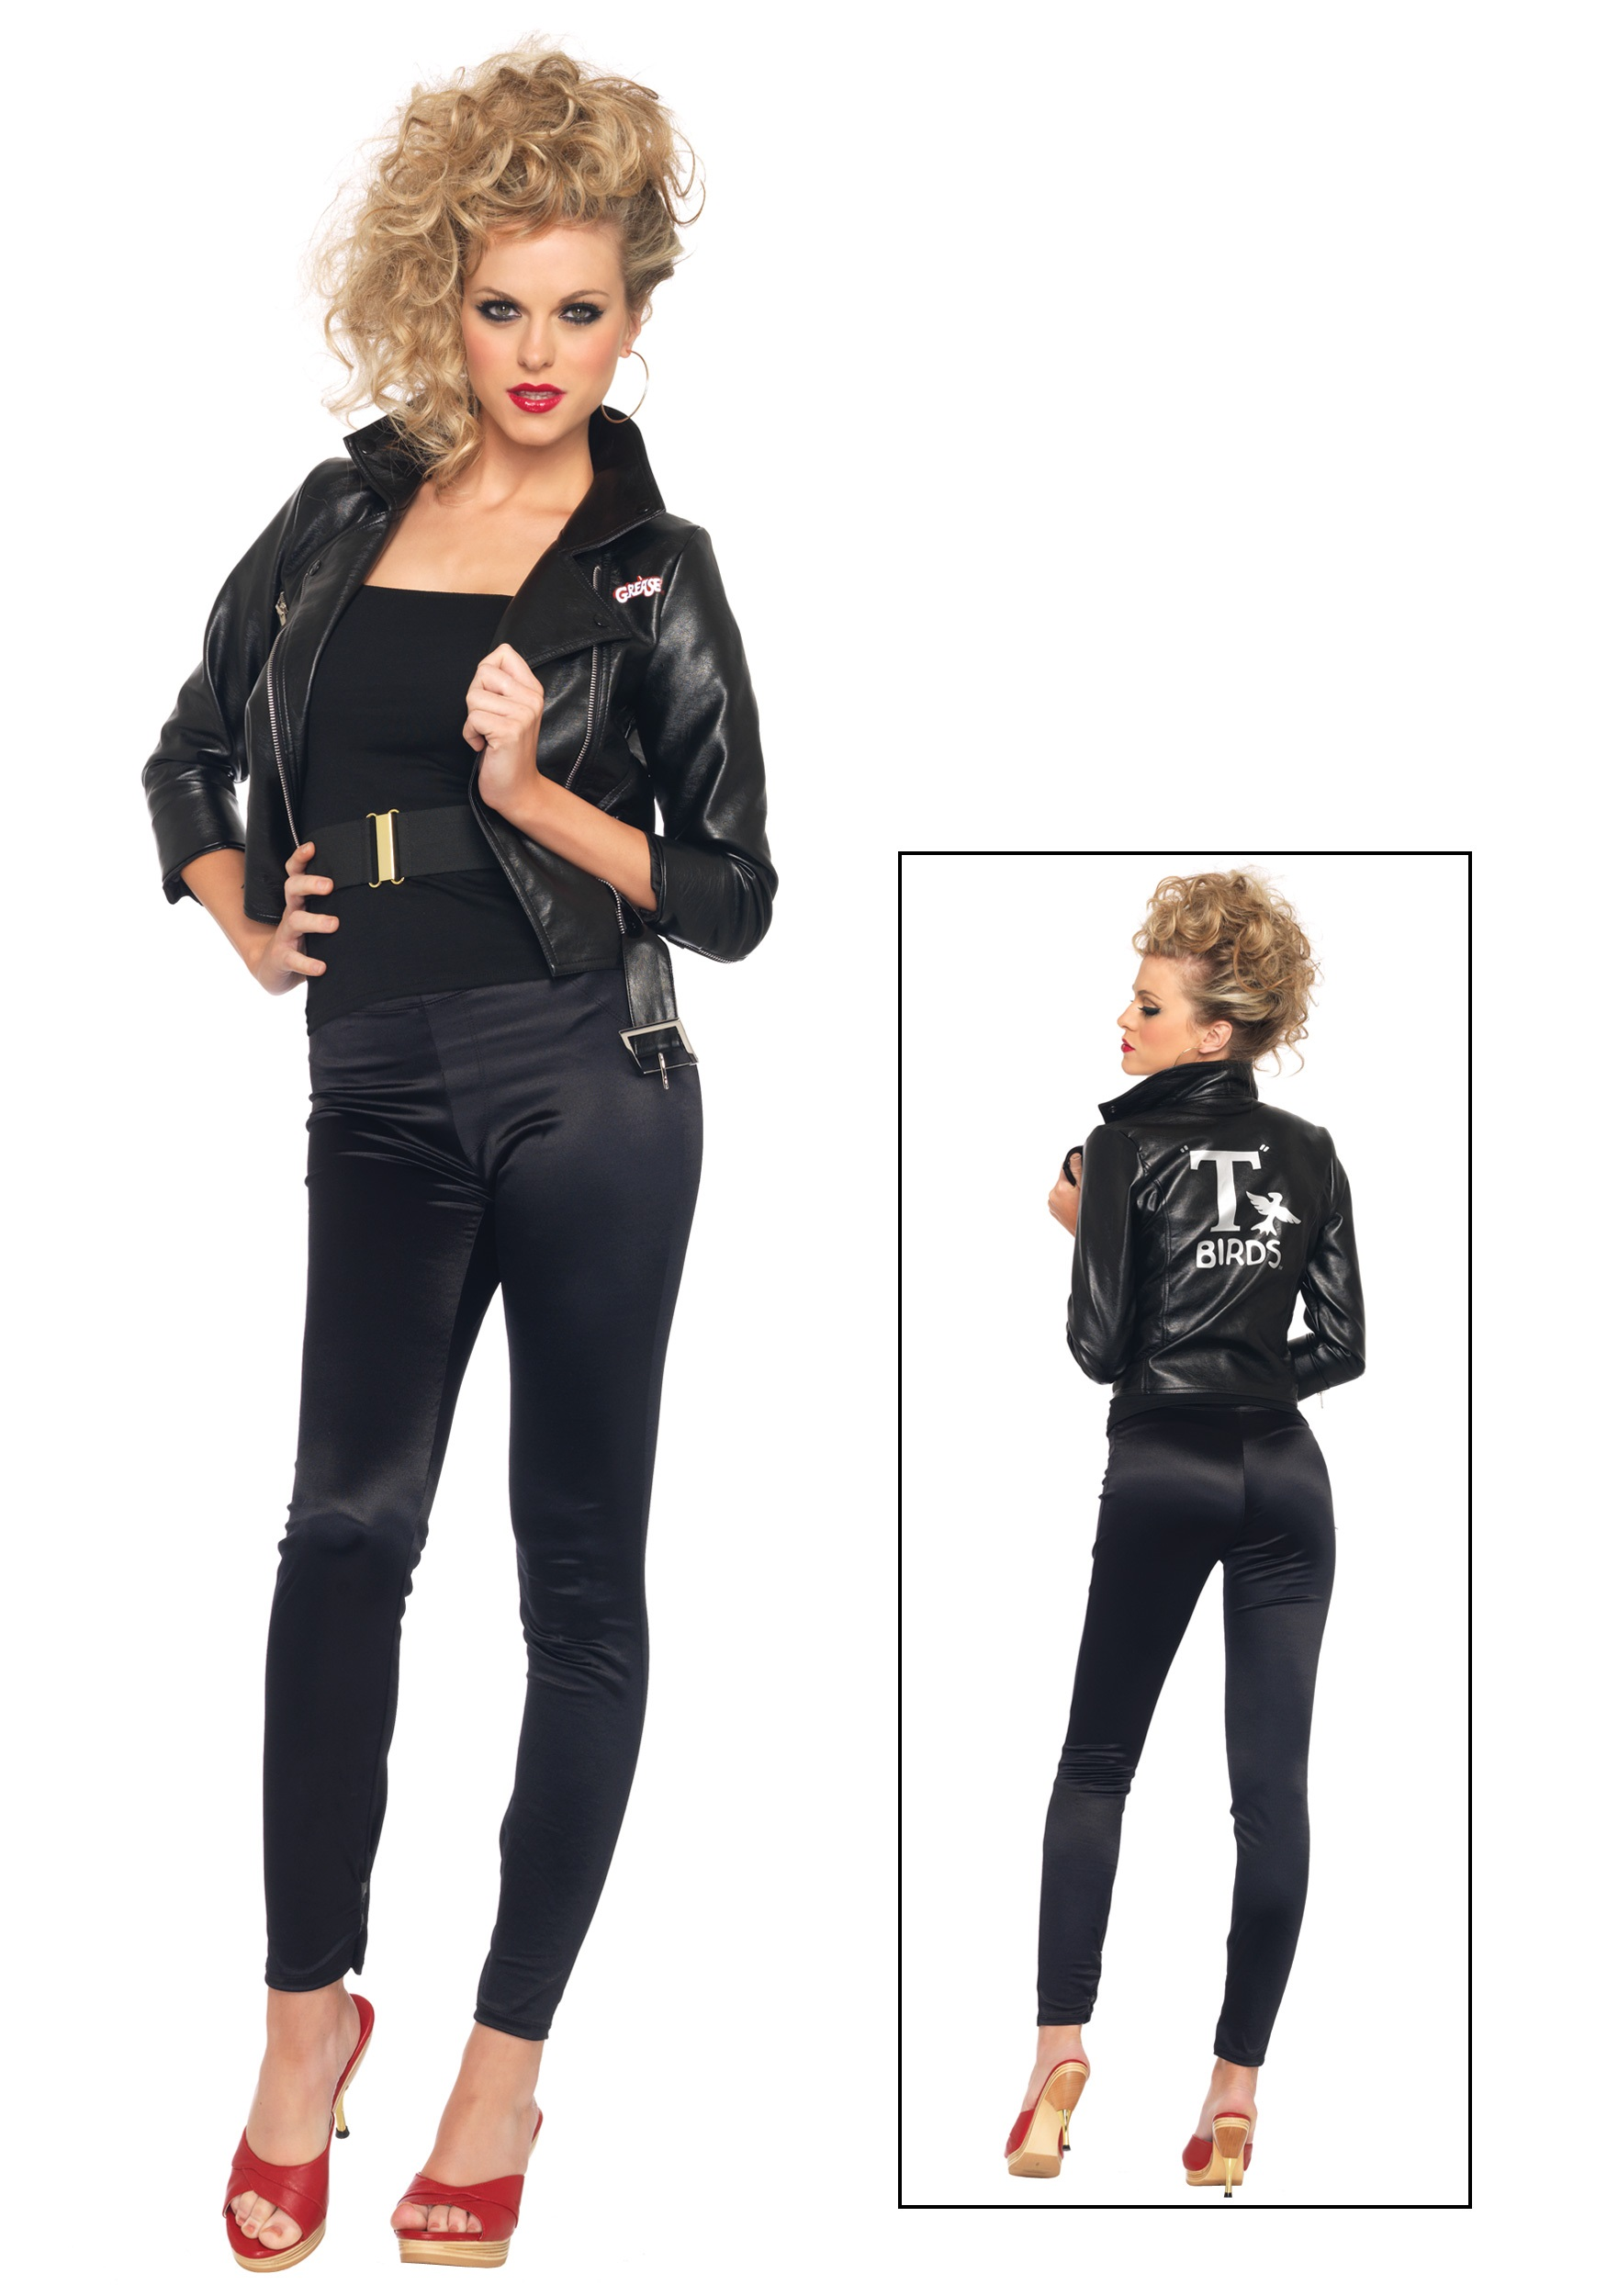 Back to20u0027s Costumes 50u0027s Costumes Adult Costumes Grease Costumes Paramount Pictures Costumes Theme Costumes TV / Movie Costumes Womenu0027s Costumes  sc 1 st  Halloween Costumes & Bad Sandy Jacket - Halloween Costumes